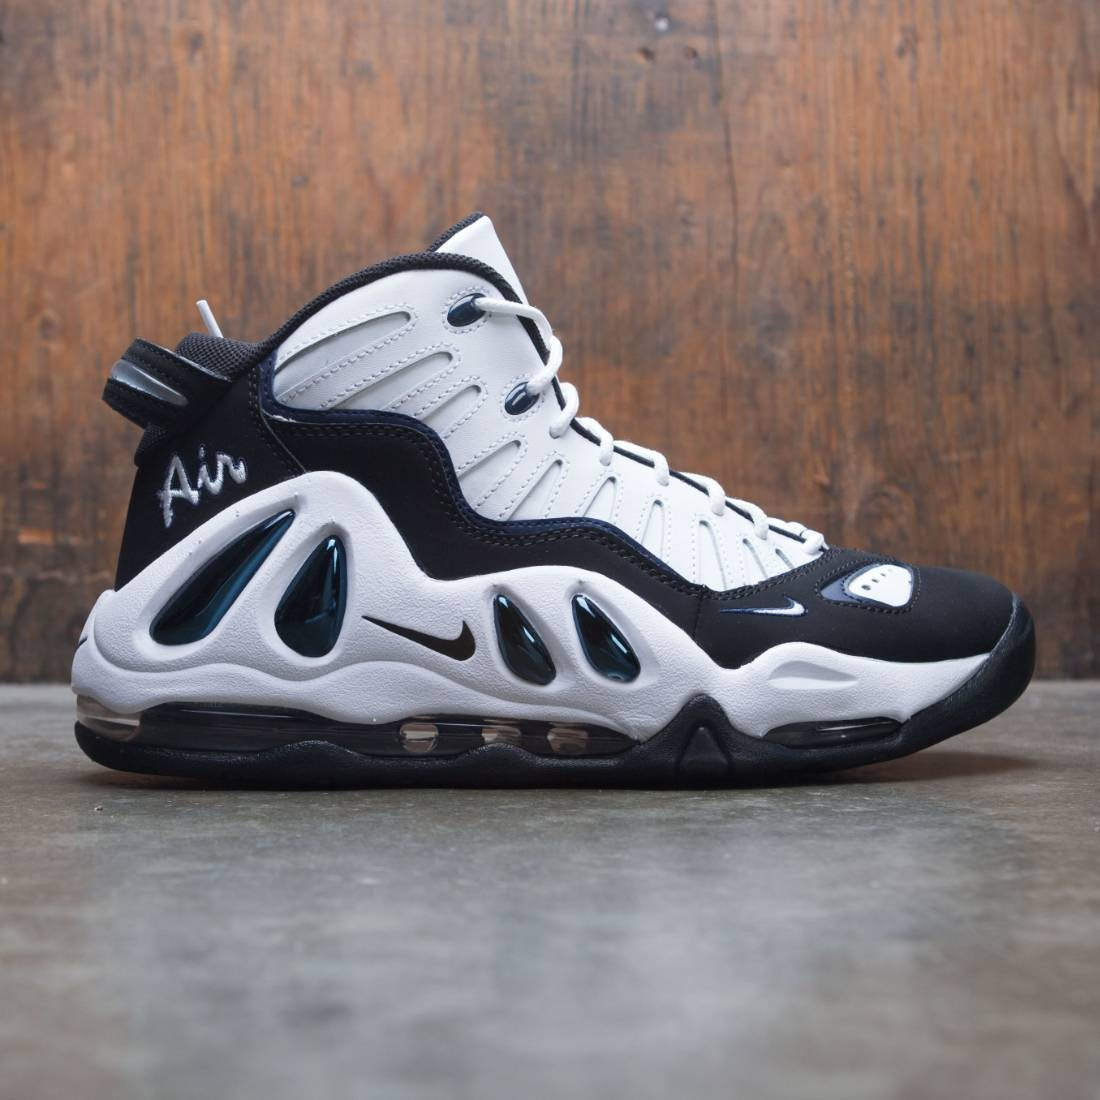 hot sale online aba6b 0ff59 Nike Men Air Max Uptempo 97 white black college navy